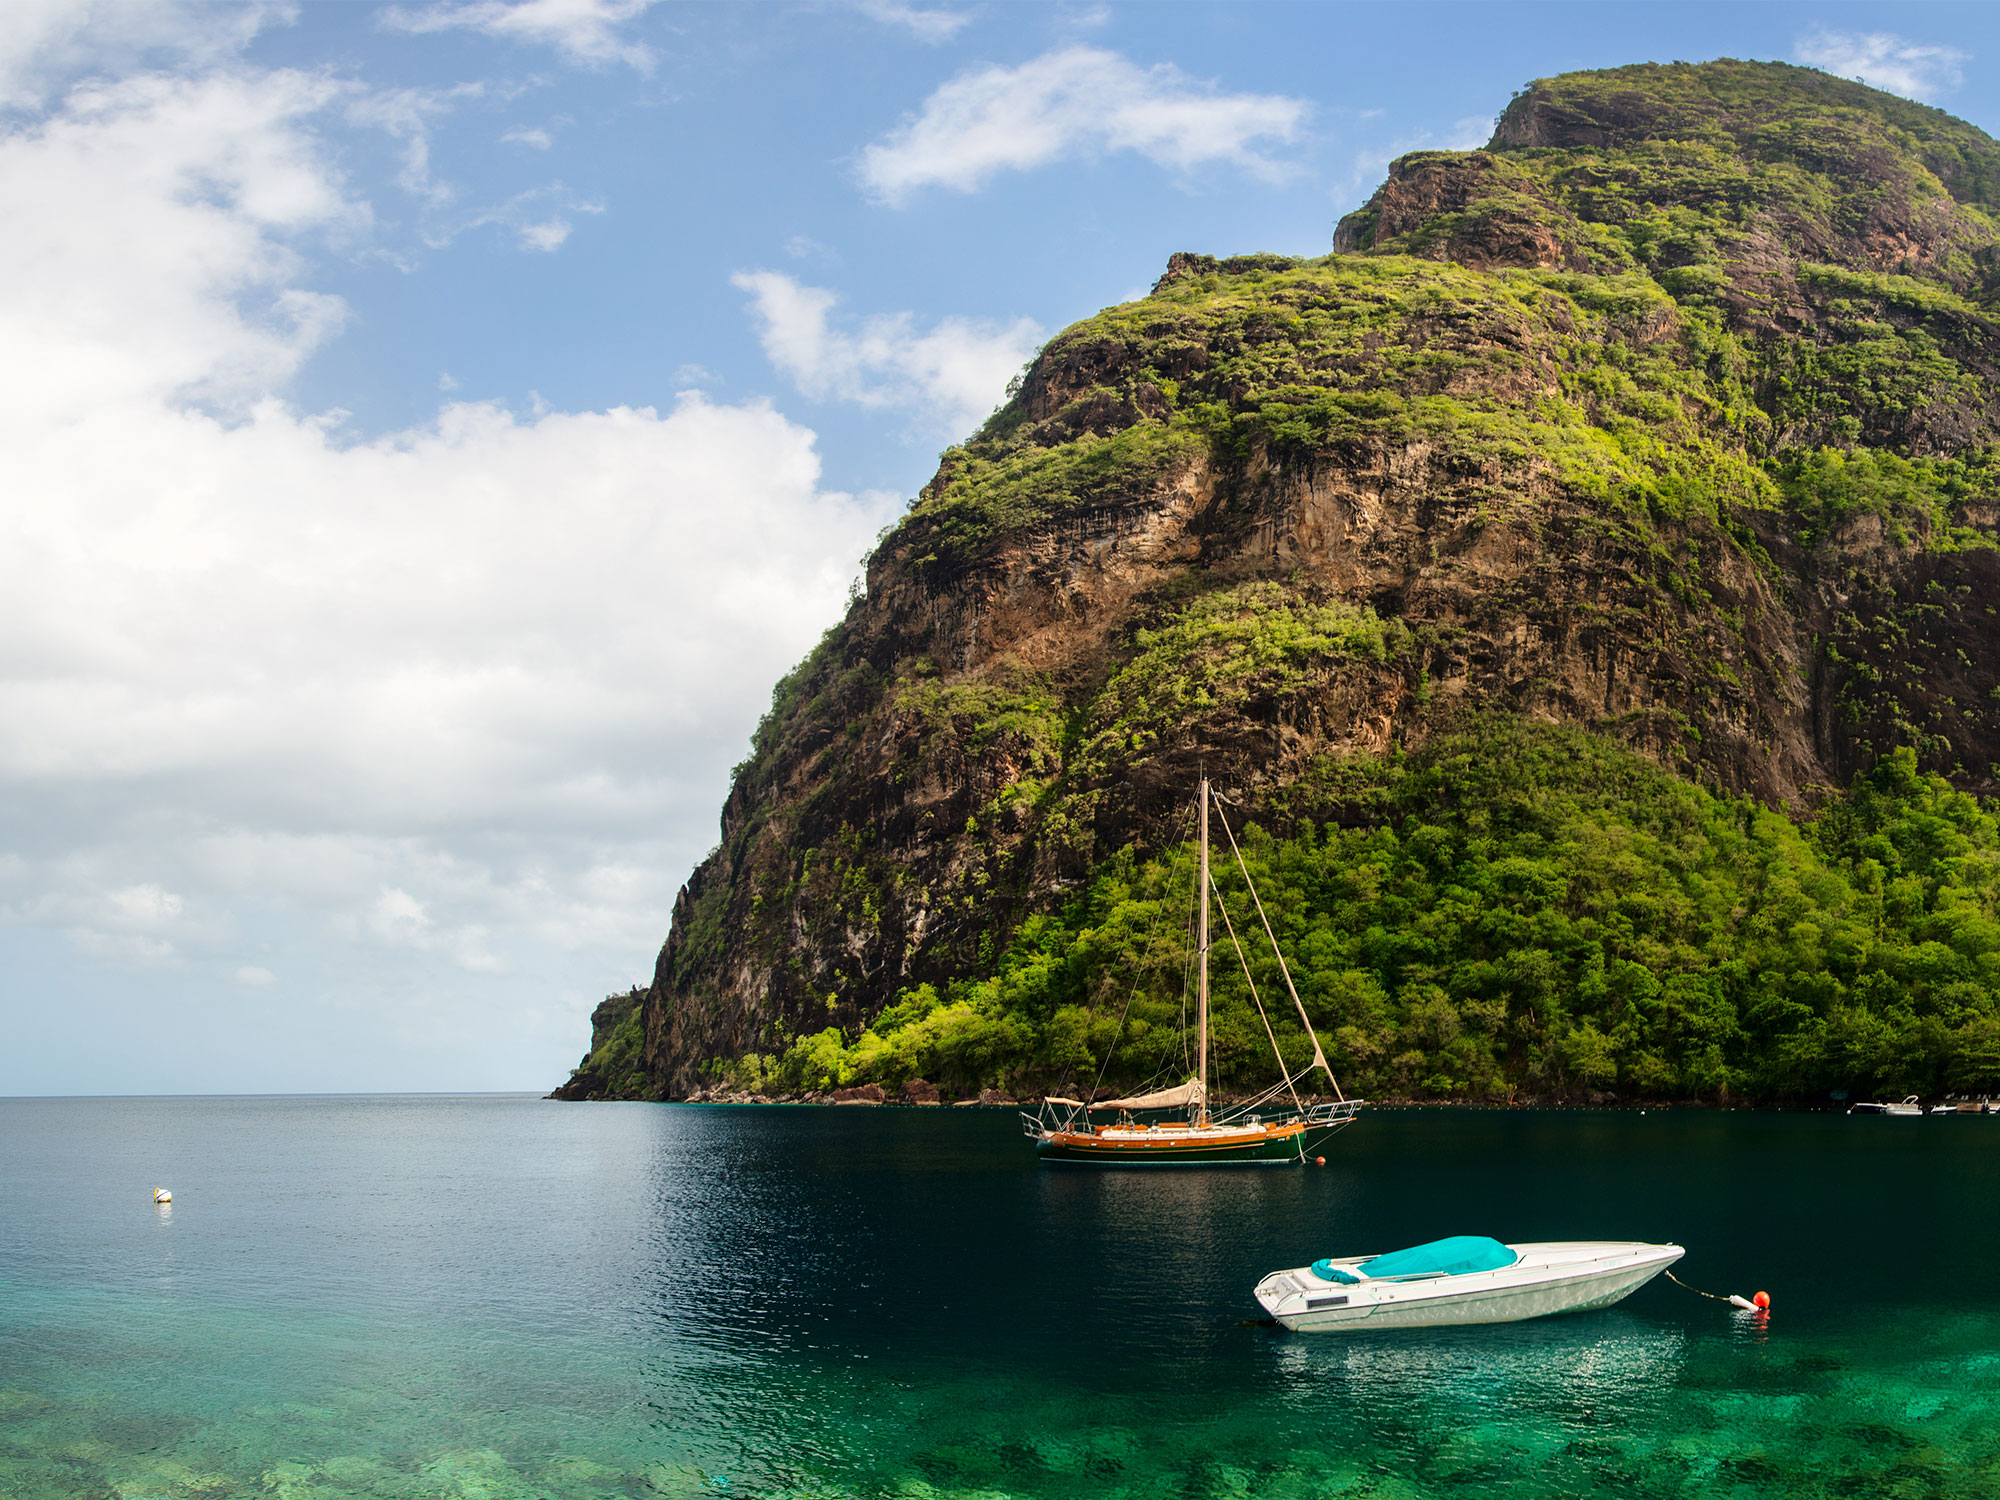 St. Lucia island in the Caribbean